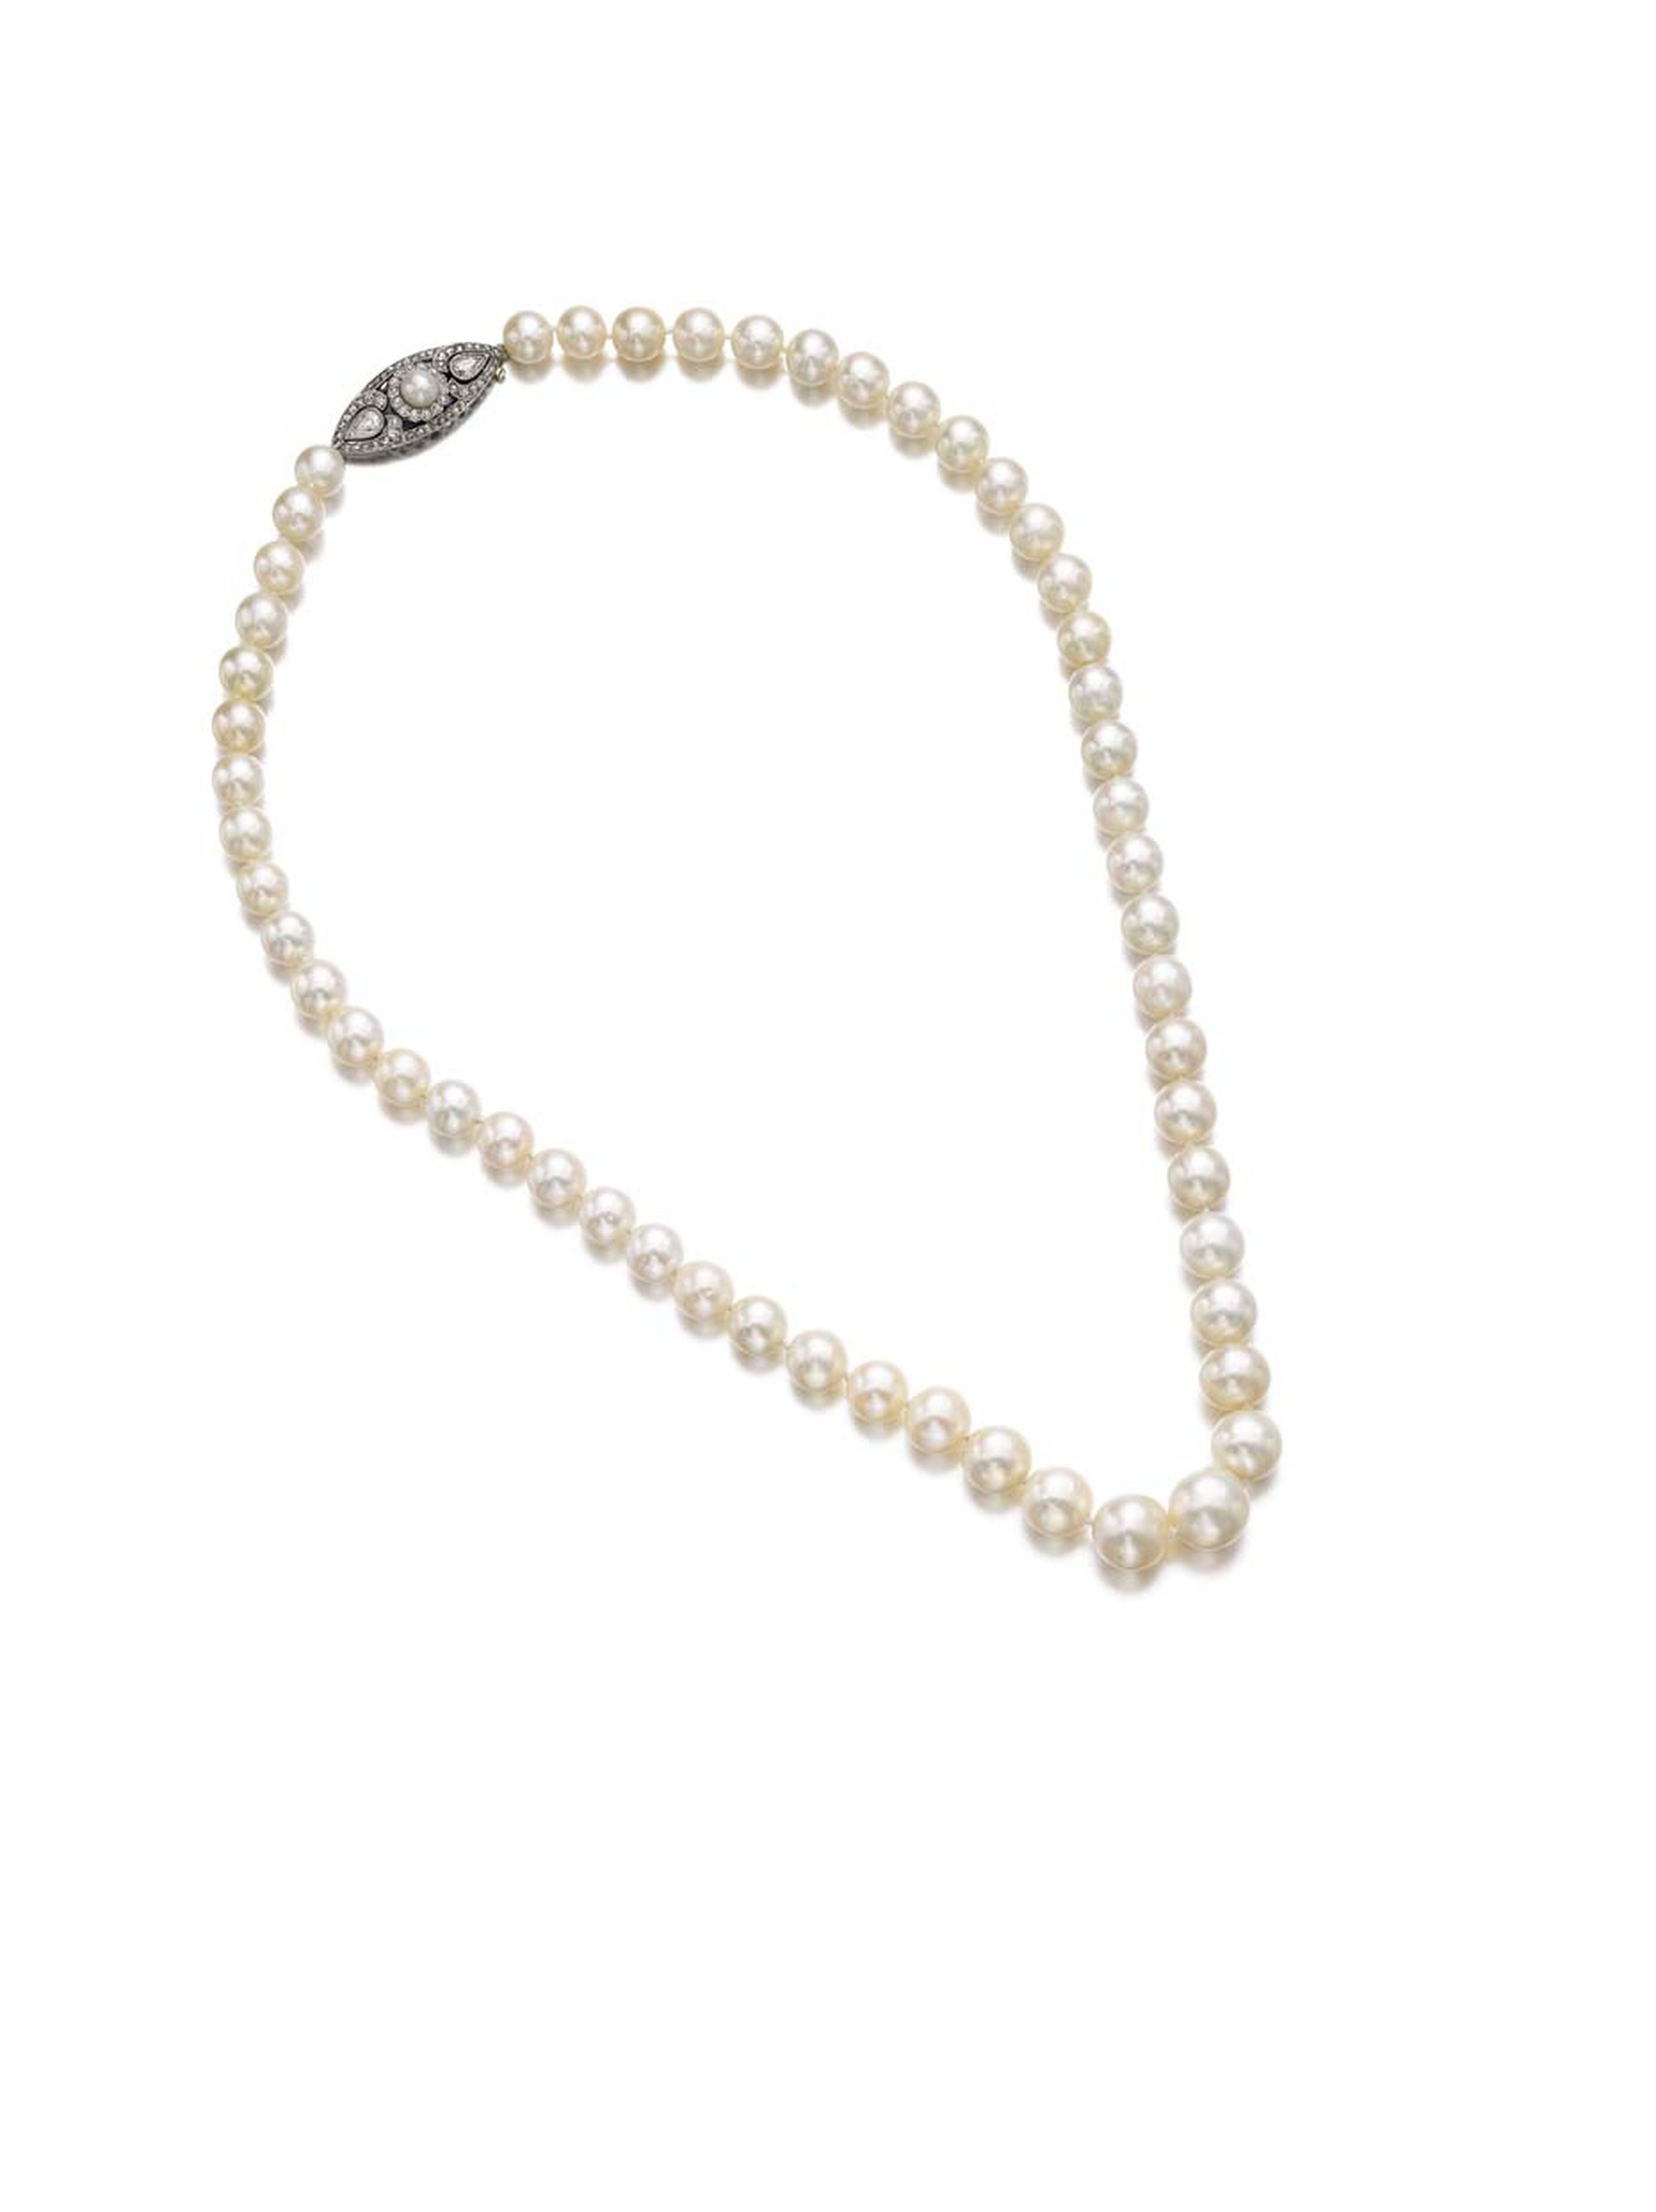 This natural pearl necklace with diamonds sold for more than eight times its high estimate, fetching nearly $3 million, at Sotheby's spring 2014 sale of jewellery in Geneva.